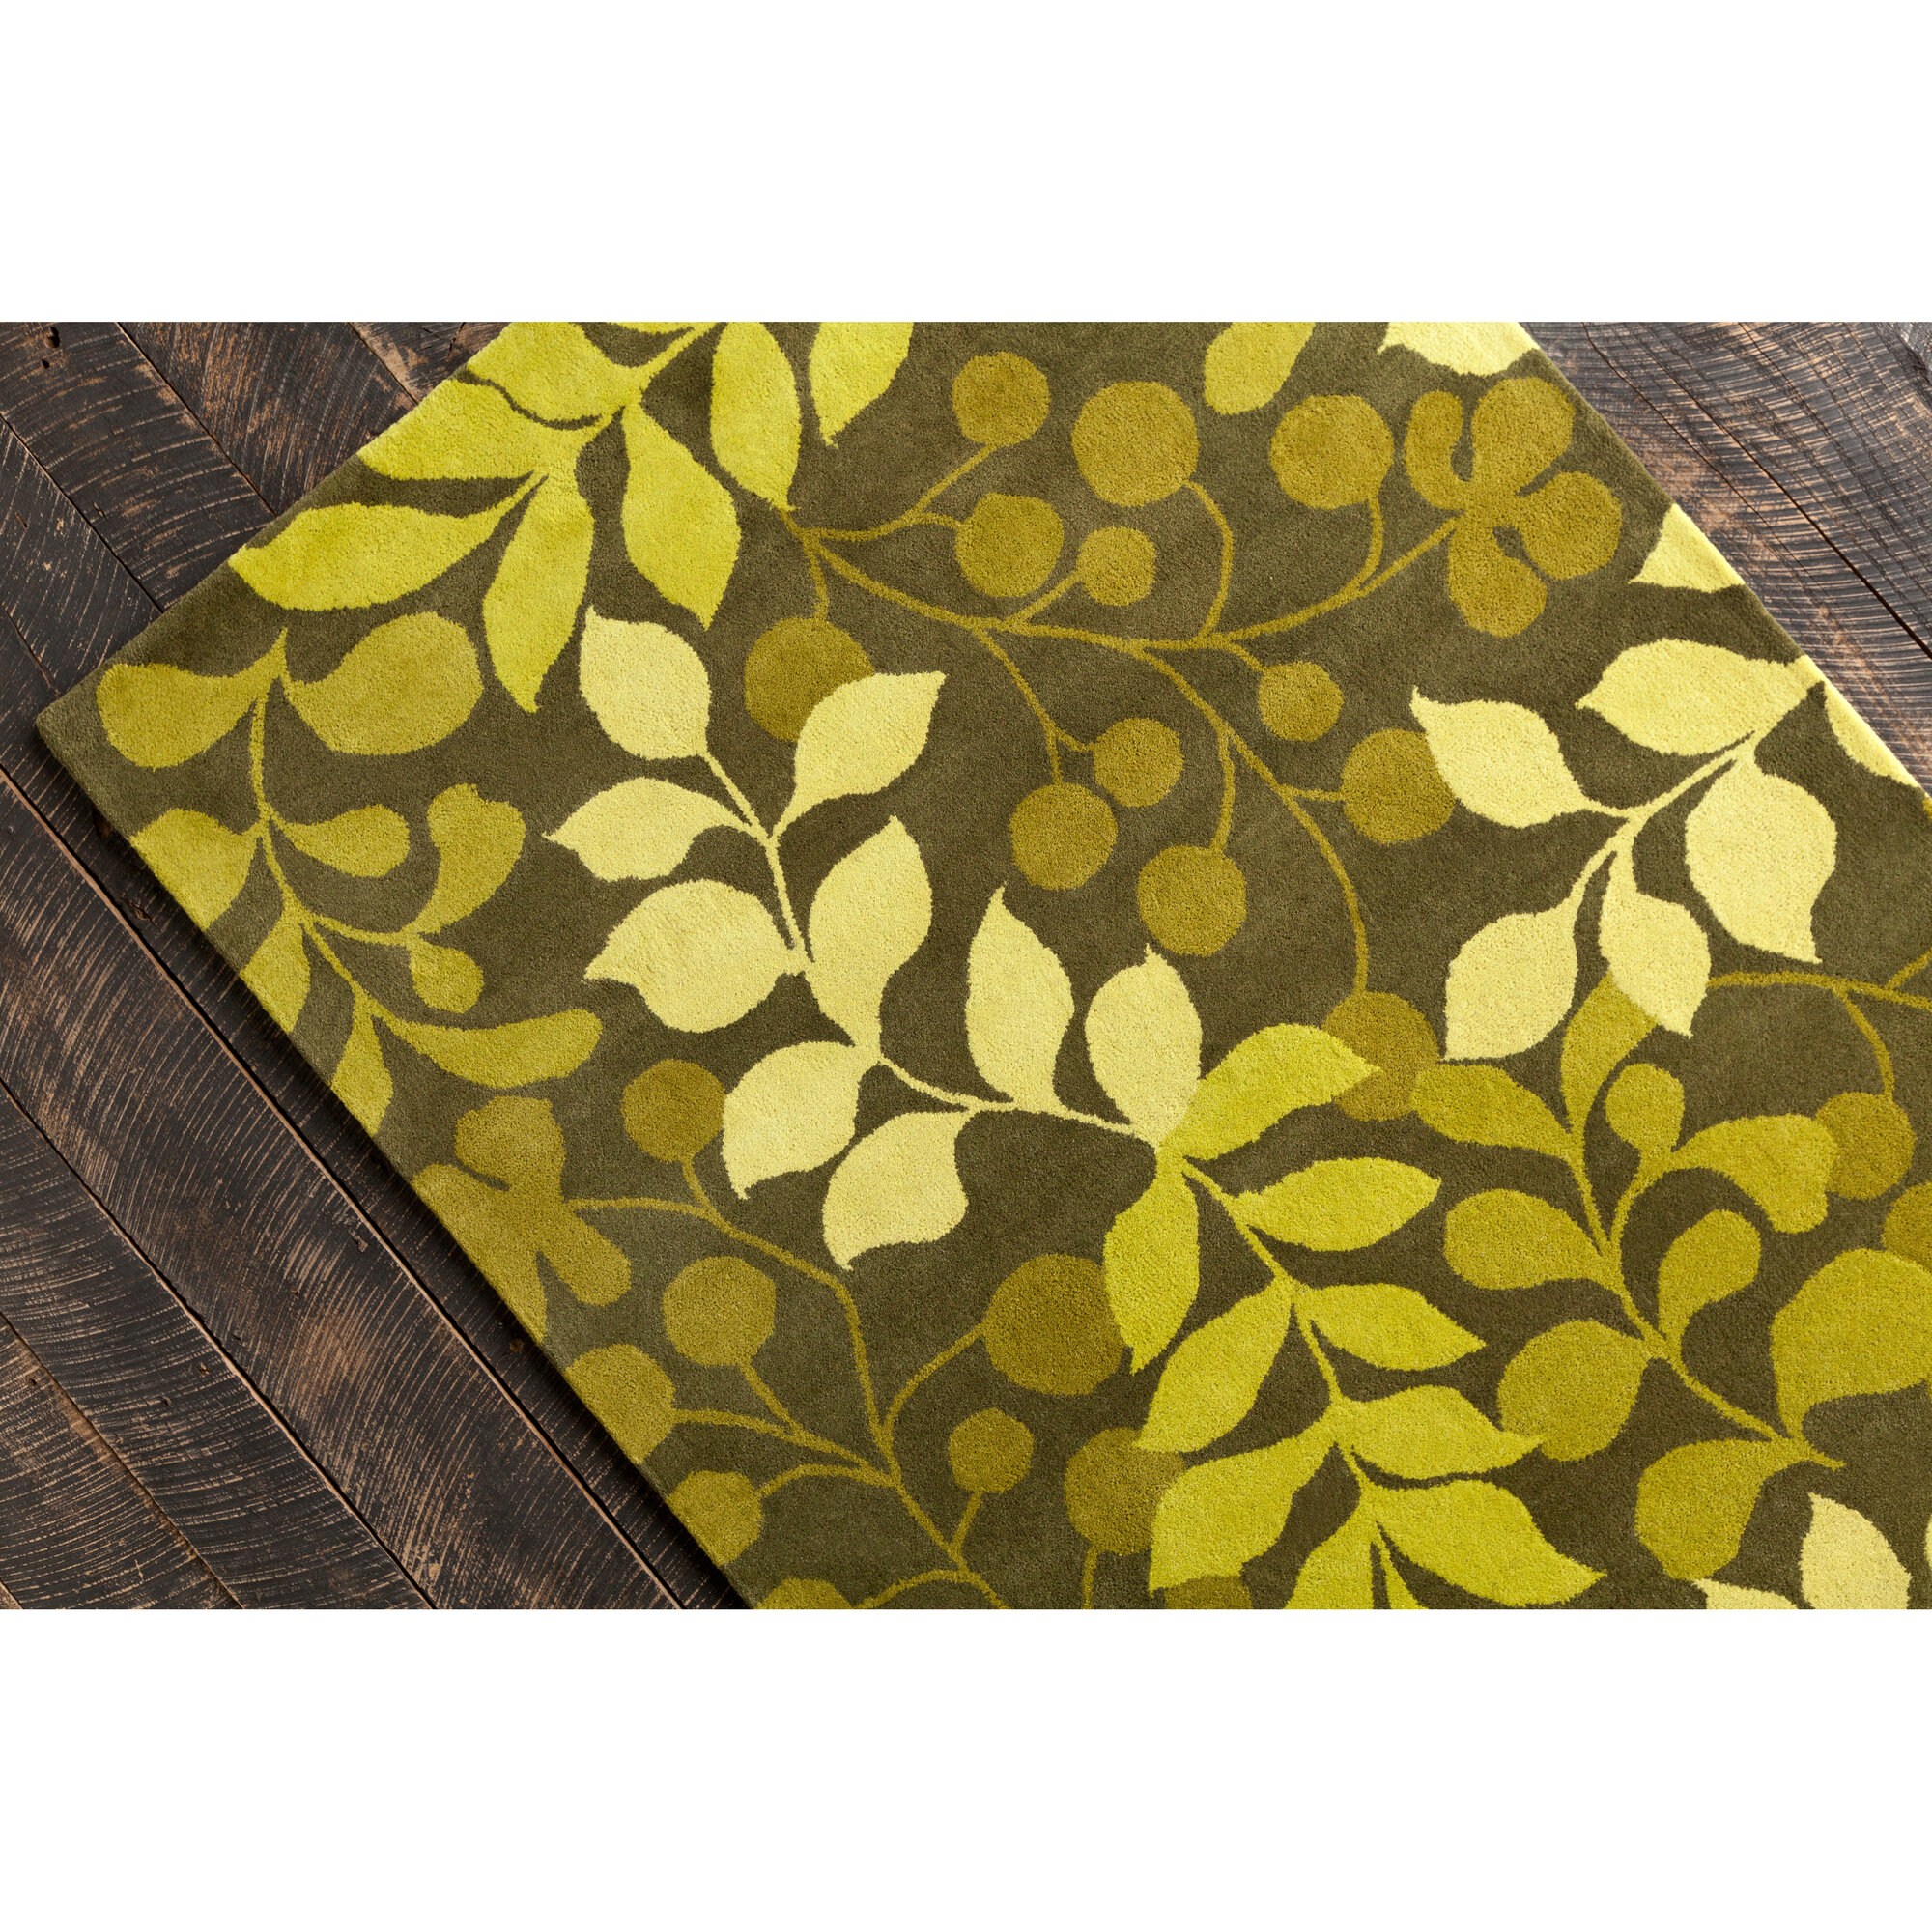 Lime Green Area Rug: Chandra Rugs Allie Hand Tufted Wool Ovile Green Lime Green